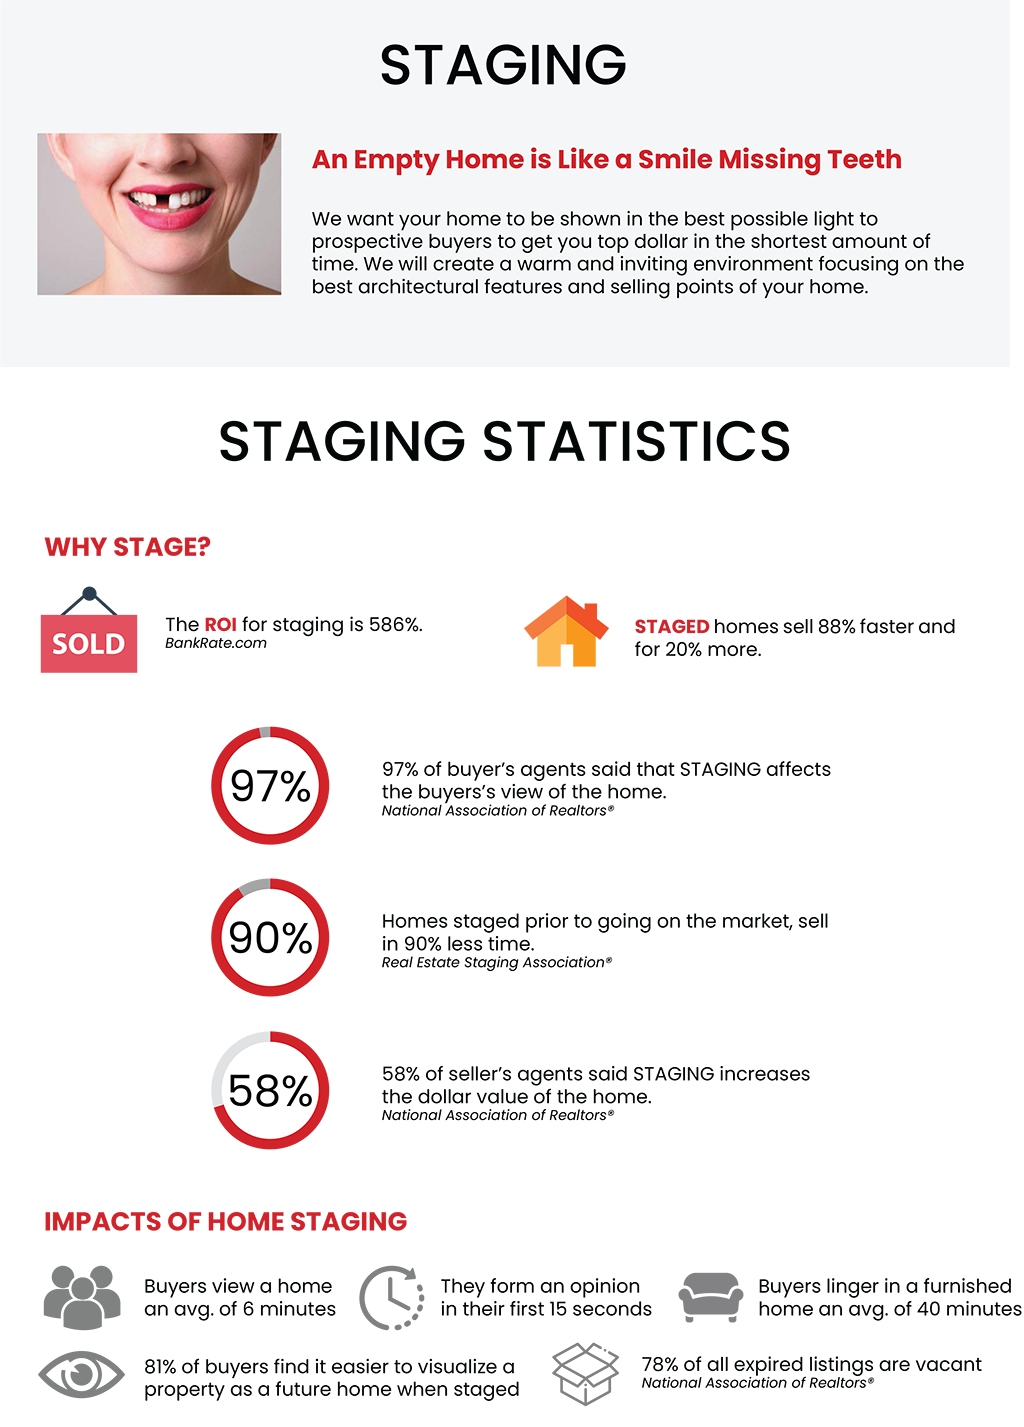 Staging. An empty home is like a smile missing teeth. We want your home to be shown in the best possible light to prospective buyers to get you top dollar in the shortest amount of time. We will create a warm and inviting environment focusing on the best architectural features and selling points of your home. Staging Statistics. Why Stage? The ROI for staging is 568%, bankrate.com. Staged homes sell 88% faster and for 20% more. 97% of buyer's agents said that STAGING affects the buyers's view of the home. National association of realtors. Homes staged prior to going on the market, sell in 90% less time. Real Estate Staging Association. 58% of seller's agents said STAGING increases the dollar value of the home. Impacts of home staging. Buyers view a home an avg. of 6 minutes. They form an opinion in their first 15 seconds. Buyers linger in a furnished home on avg. of 40 minutes. 81% of buyers find it easier to visualize a property as a future home when staged. 78% of all expired listings are vacant.